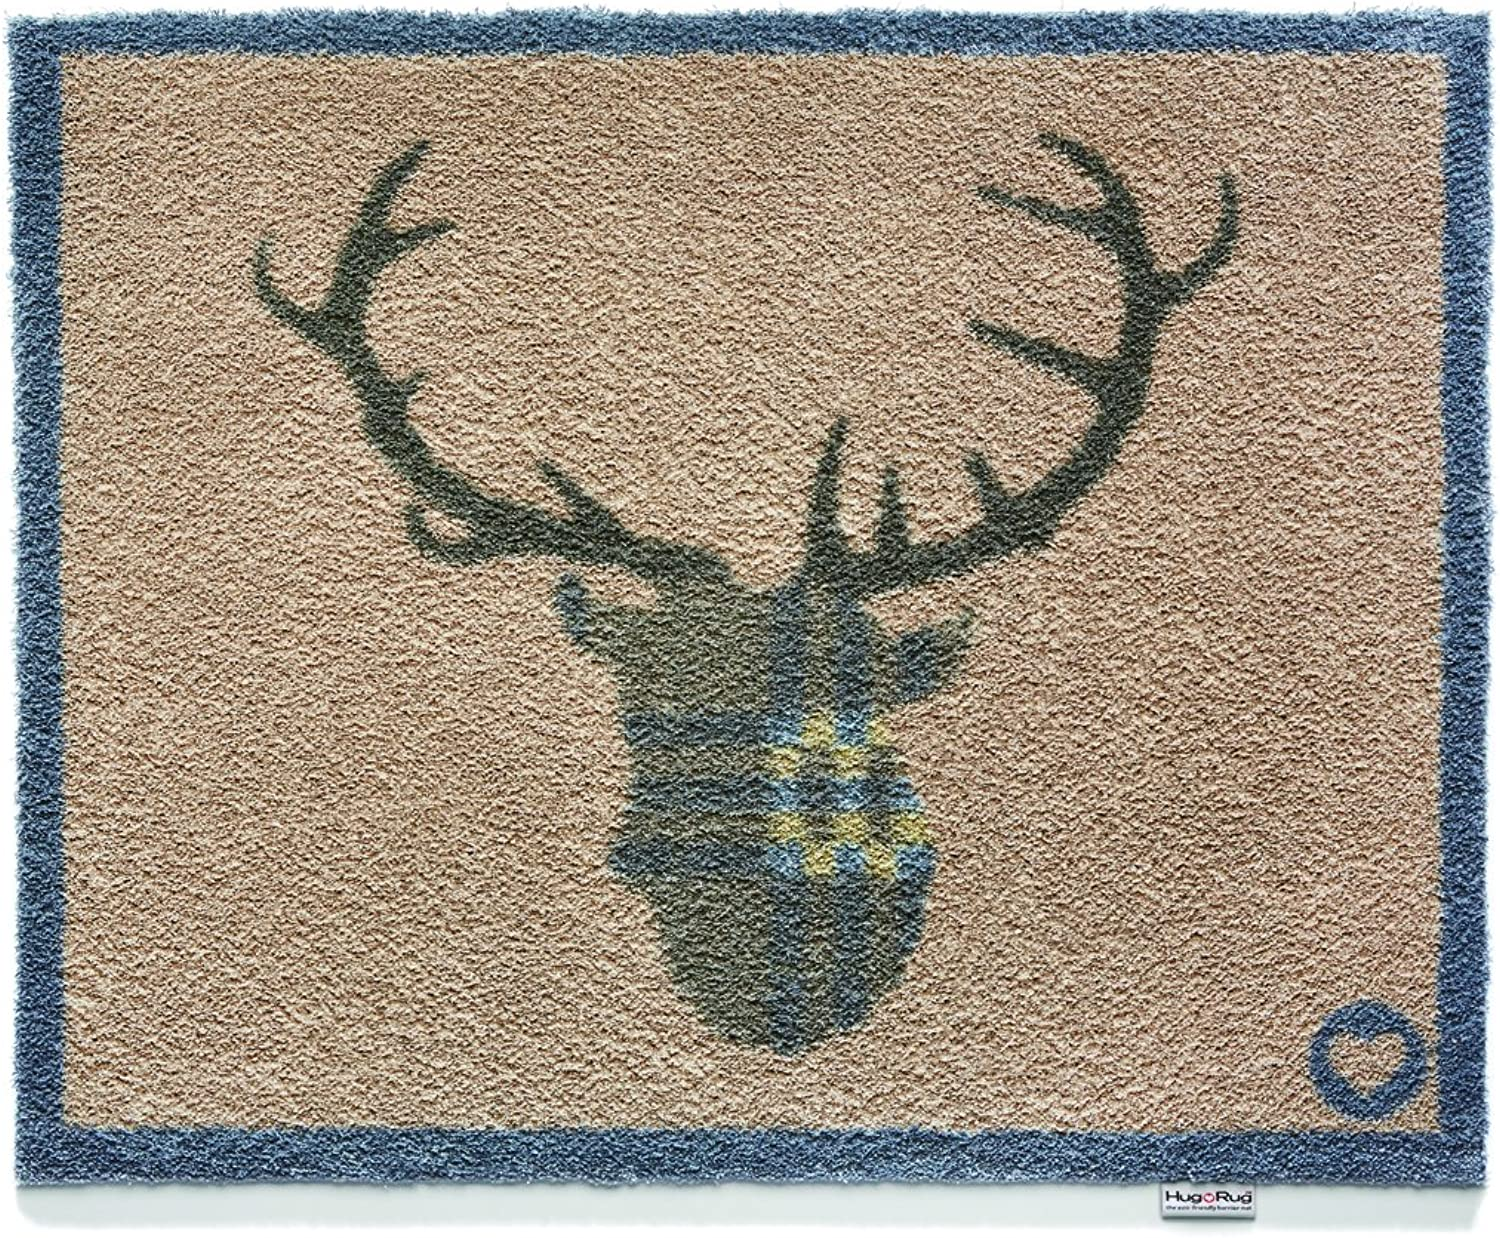 Bosmere Hug Rug Eco-Friendly Absorbent Dirt Trapping Indoor Washable Mat, 25.5  x 33.5 , Deer Buck Antler